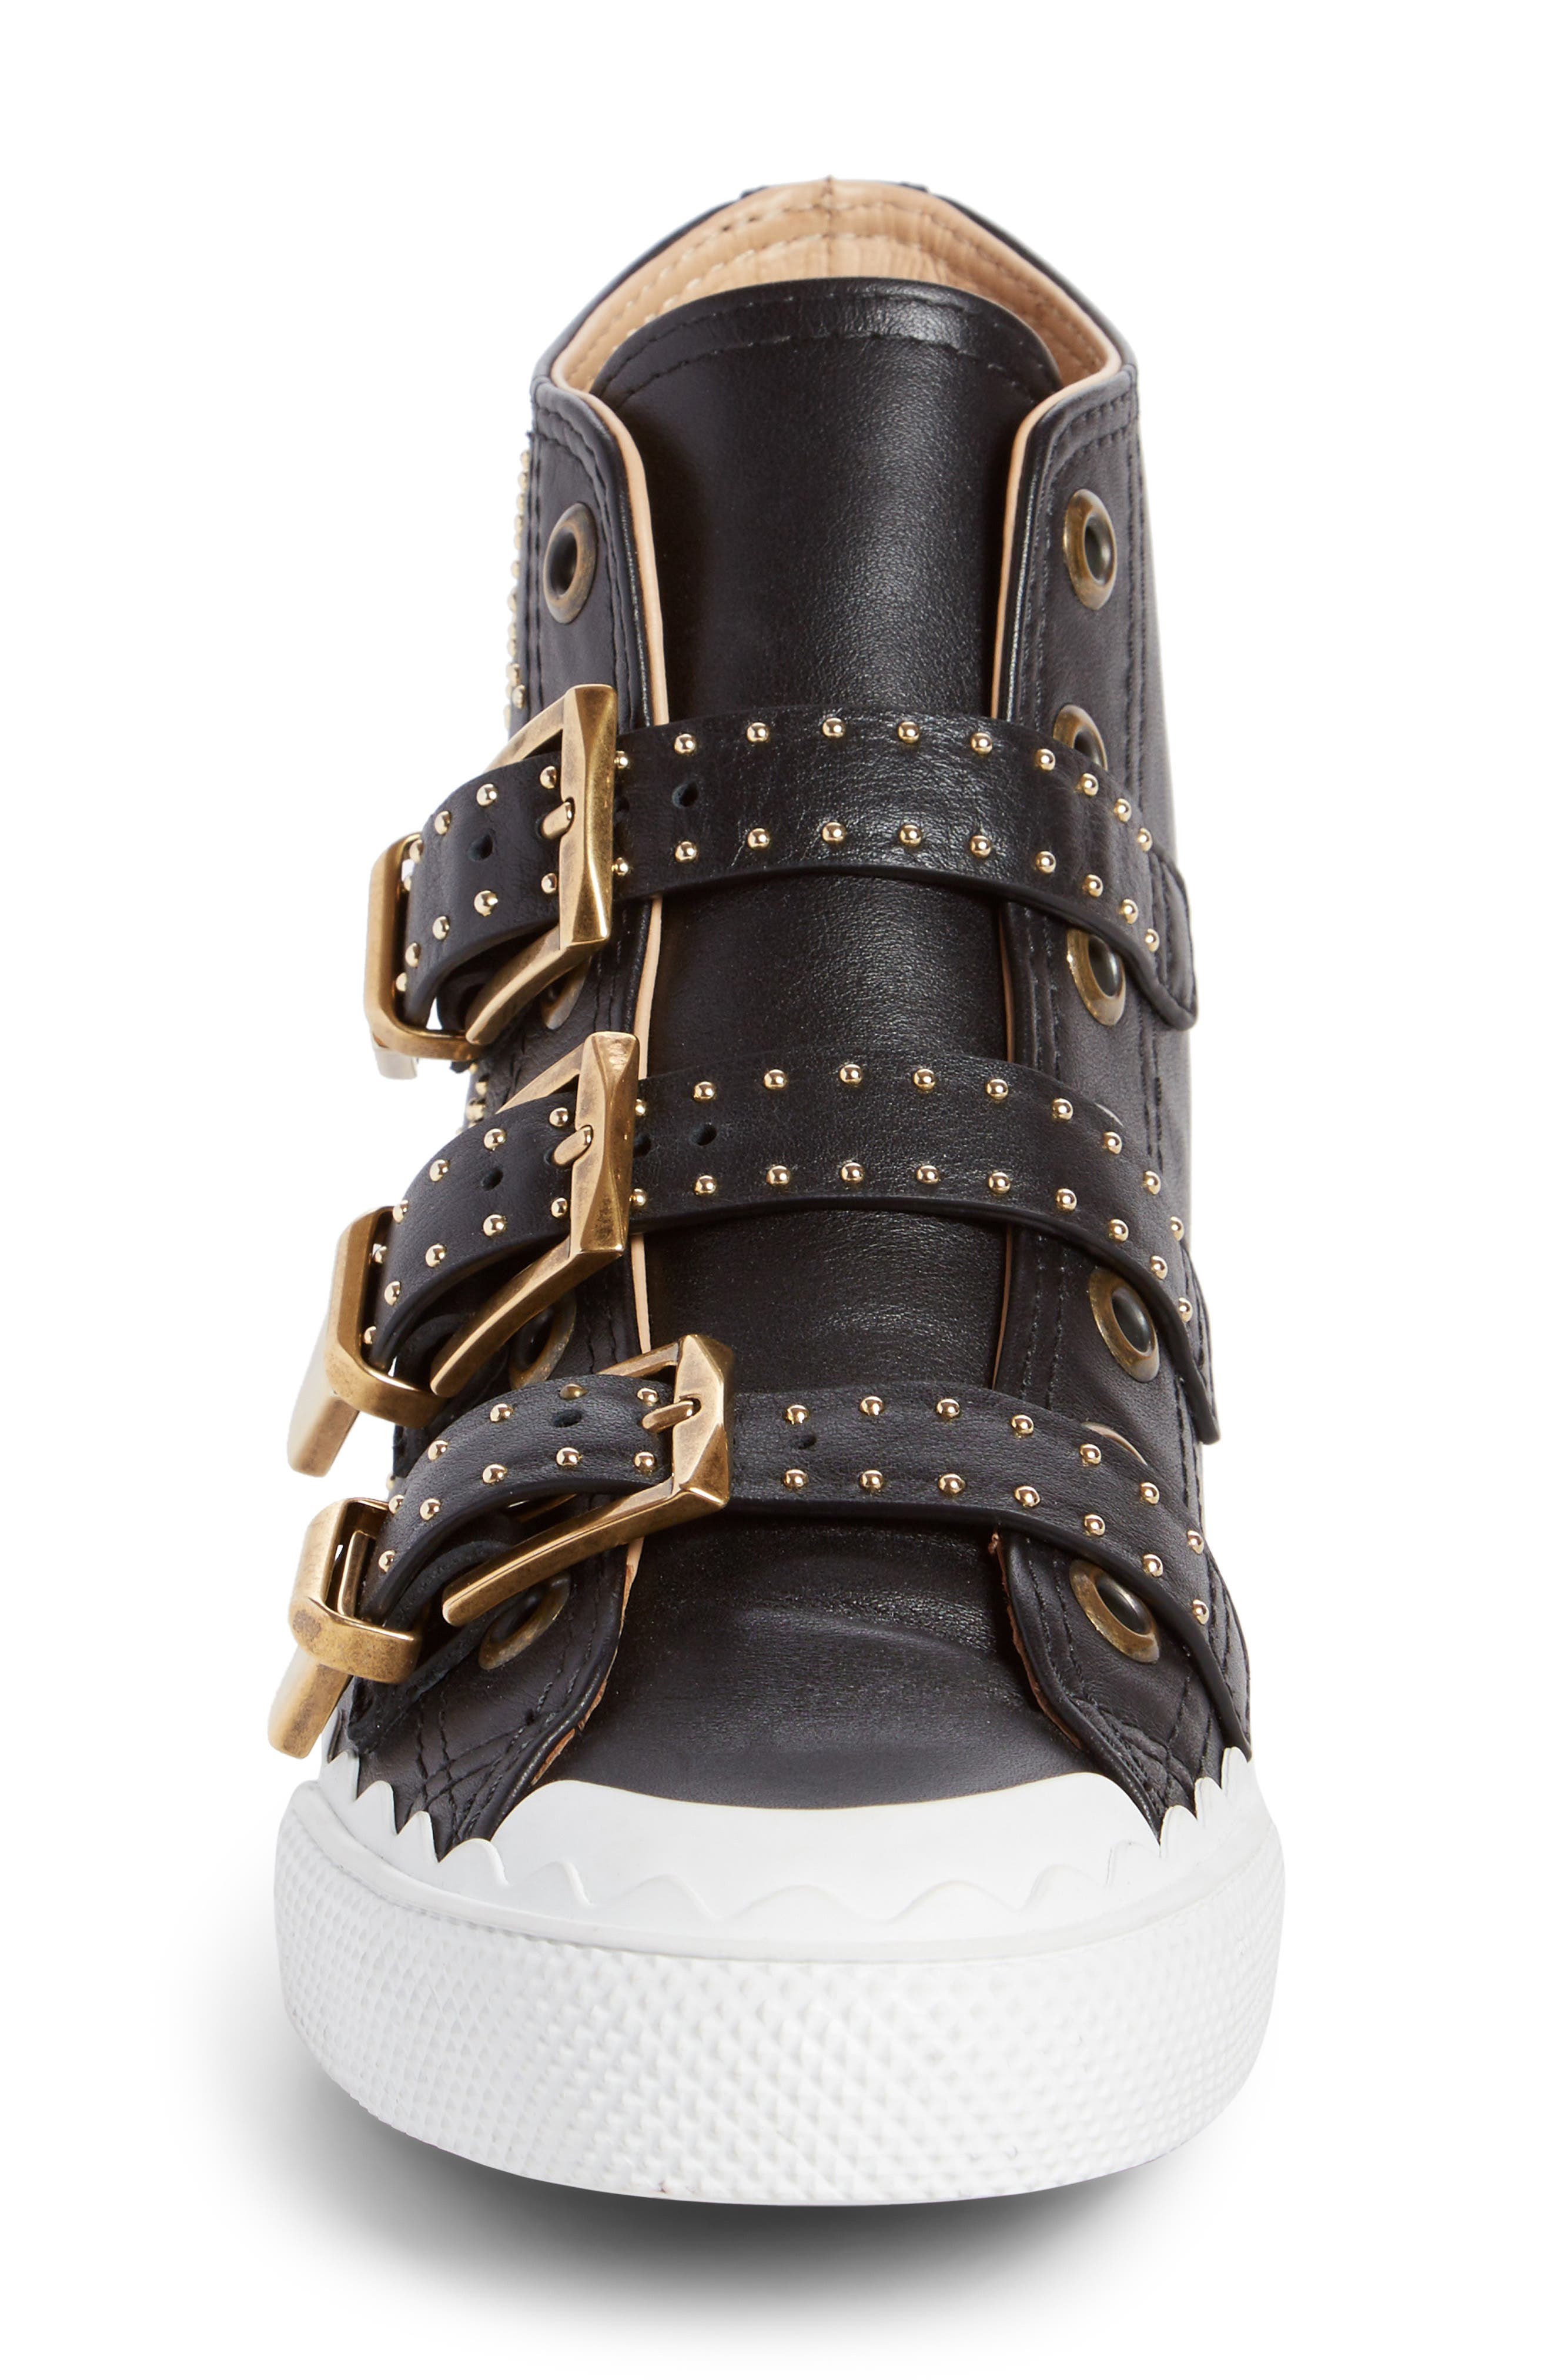 Kyle Stud Buckle High Top Sneaker,                             Alternate thumbnail 3, color,                             Black/ Gold